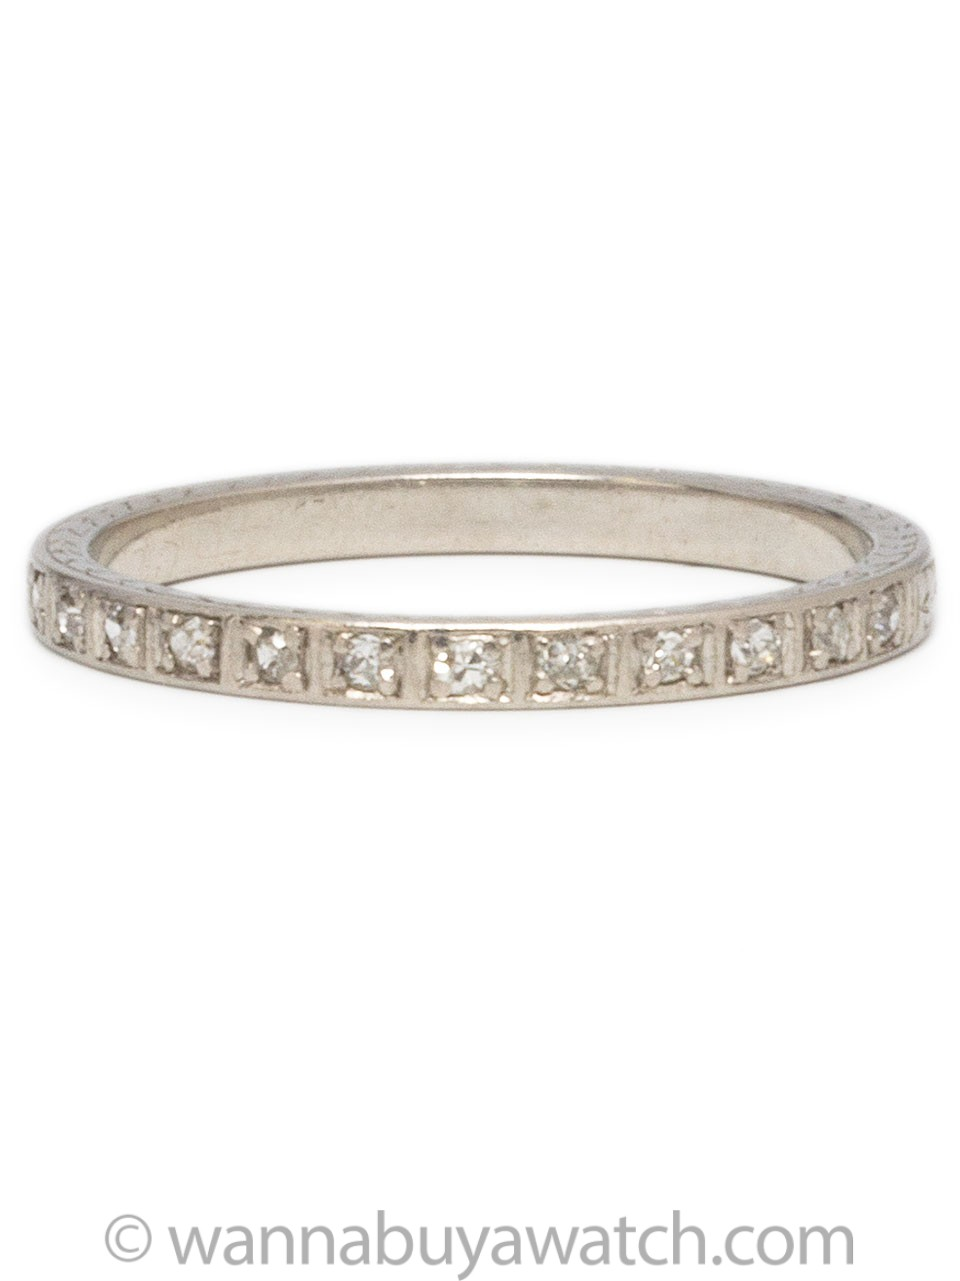 1920's Platinum Diamond Band 6.75